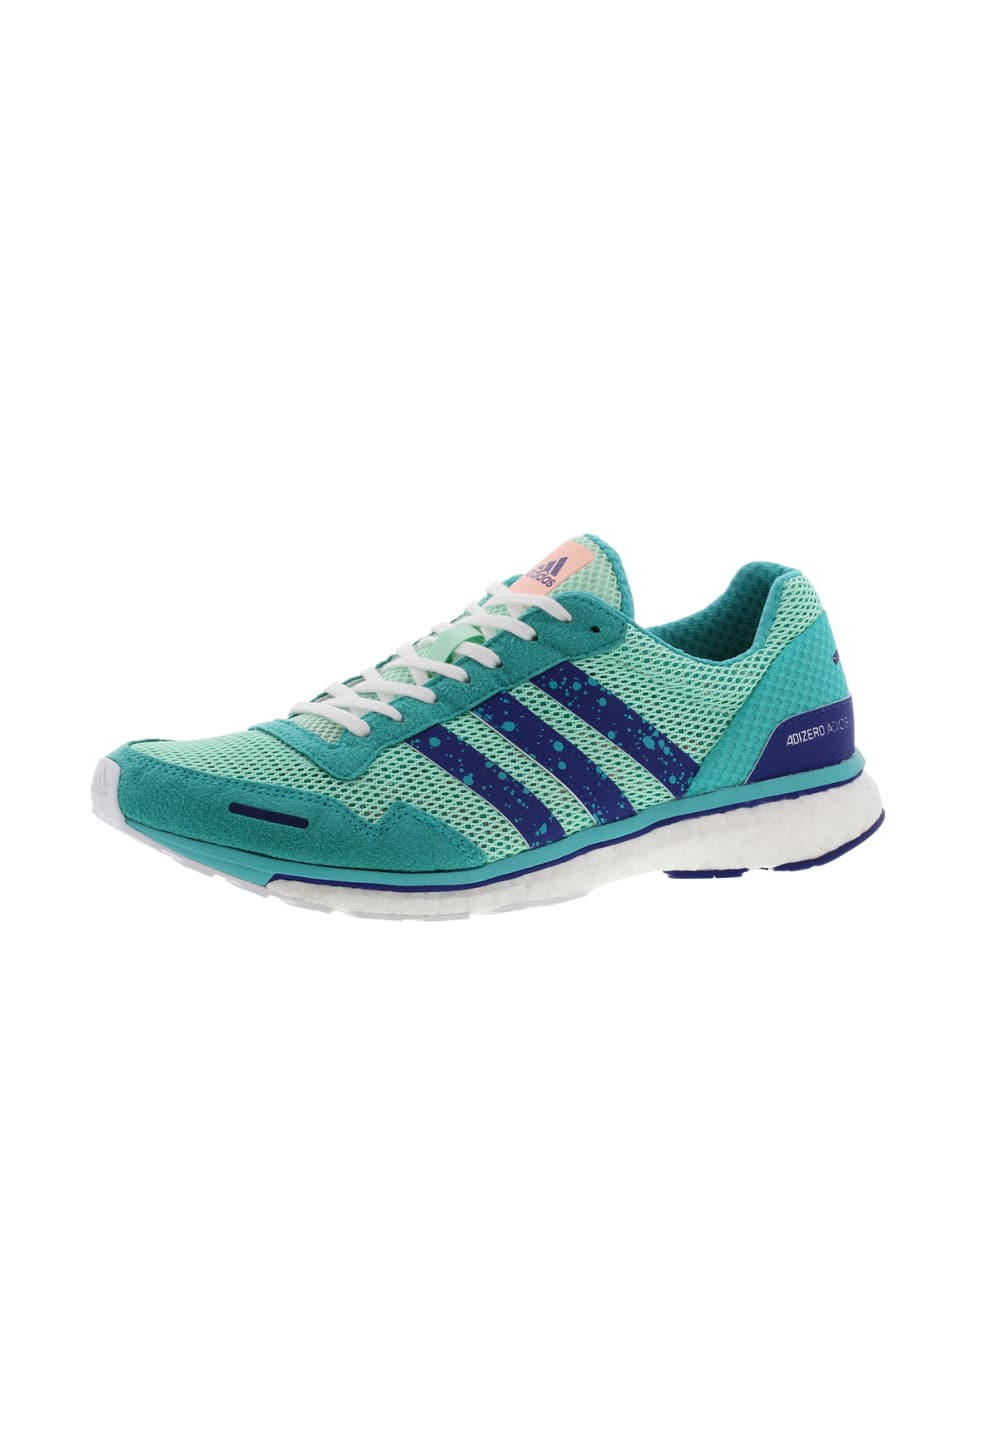 c1066c6814a0 ... adidas Adizero Adios 3 - Running shoes for Women - Green. Back to  Overview. 1  2  3  4. Previous